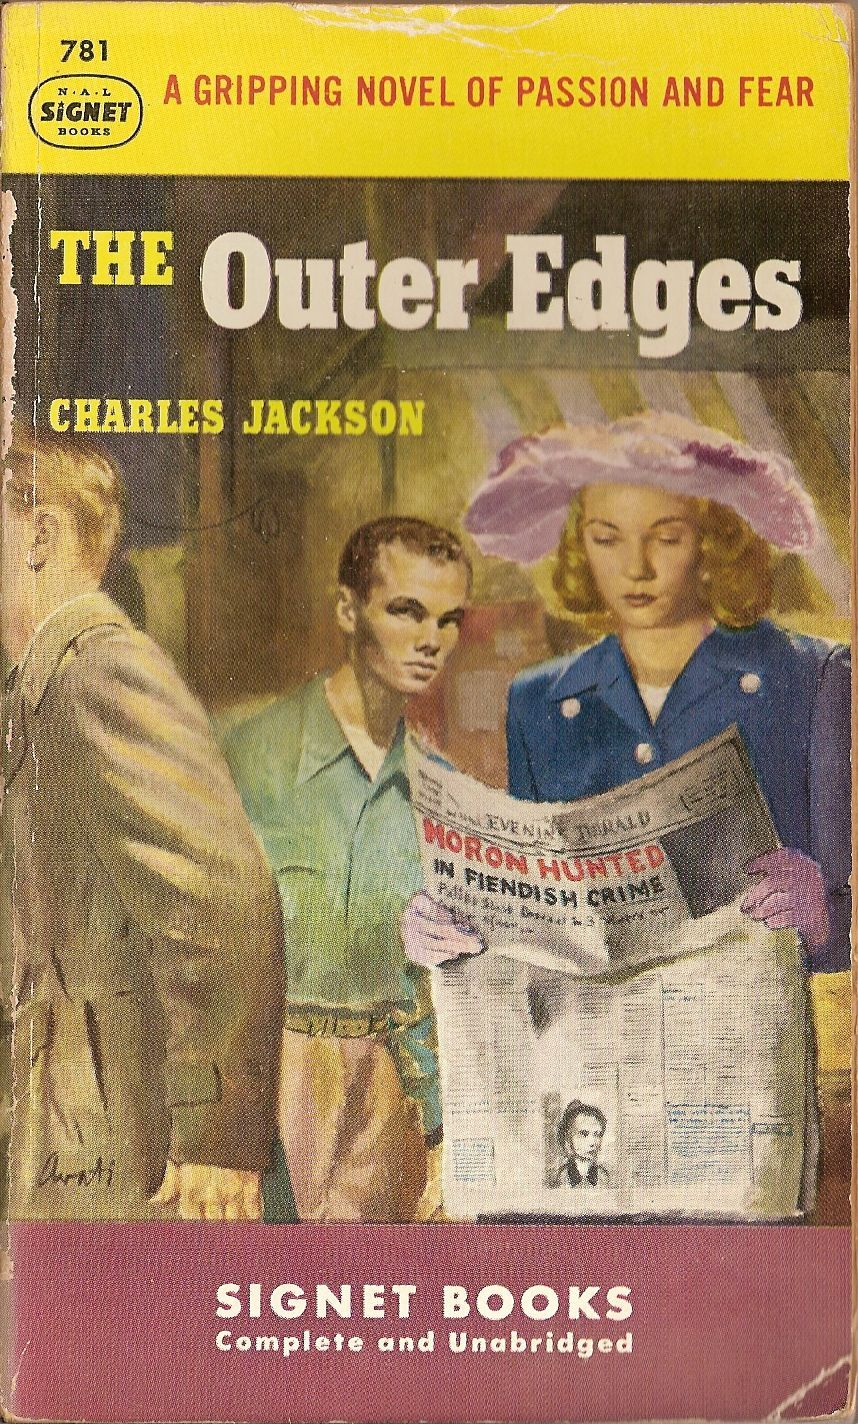 Moron Hunted in Fiendish Crime. The Outer Edges. Charles Jackson. Signet 781, 1950. Cover by James Avati. First printing. Jackson (1903–1968) was widely known for his 1944 novel The Lost Weekend. The Outer Edges was released in 1948 and dealt with the gruesome rape and murder of two girls in Westchester County, New York. It received mixed reviews, and sales were poor relative to his previous novels.